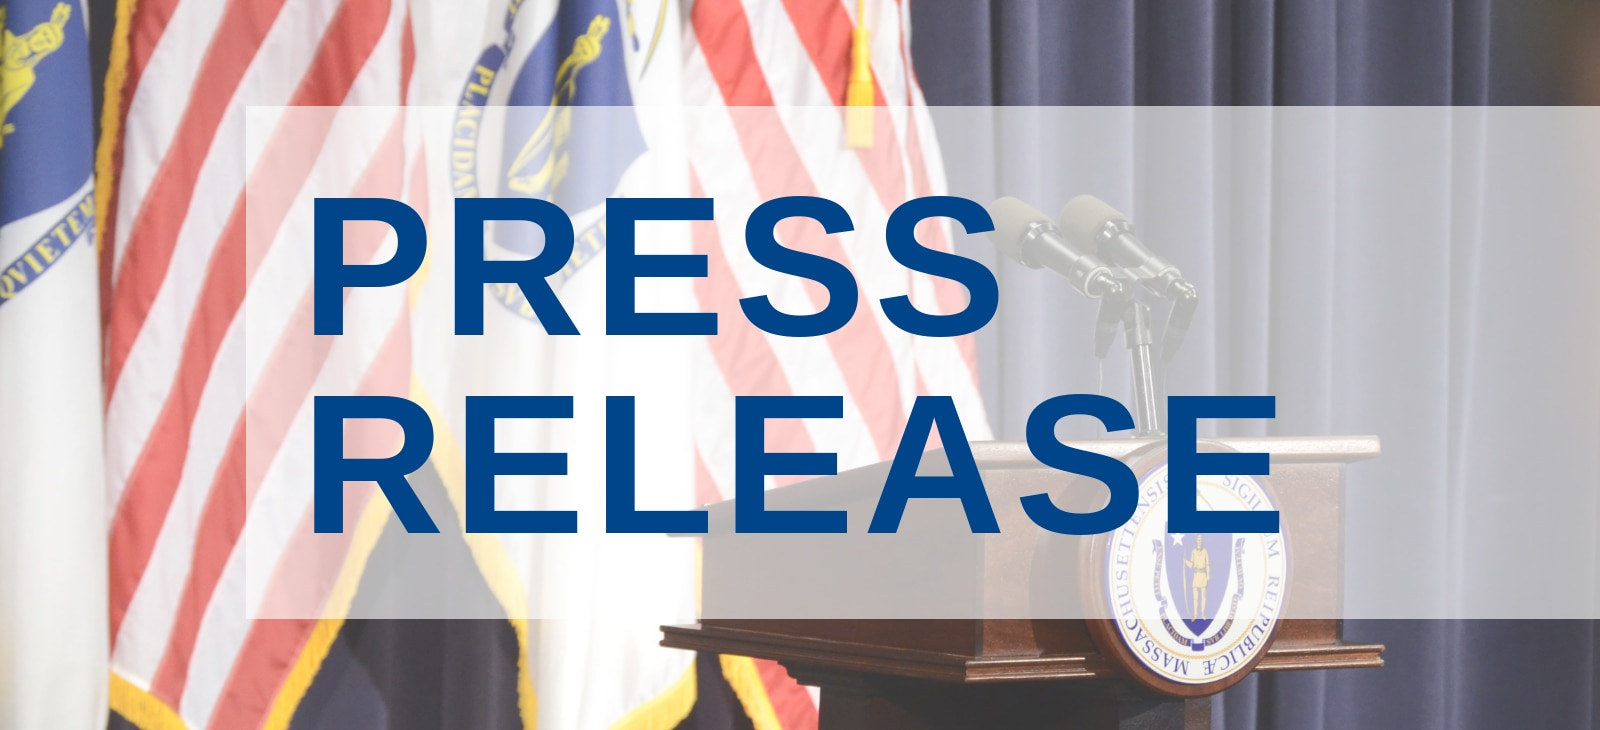 Baker-Polito Administration Announces Health Connector Completes Successful Open Enrollment with Highest-Ever Membership, Covering 282,000 People with Health Insurance